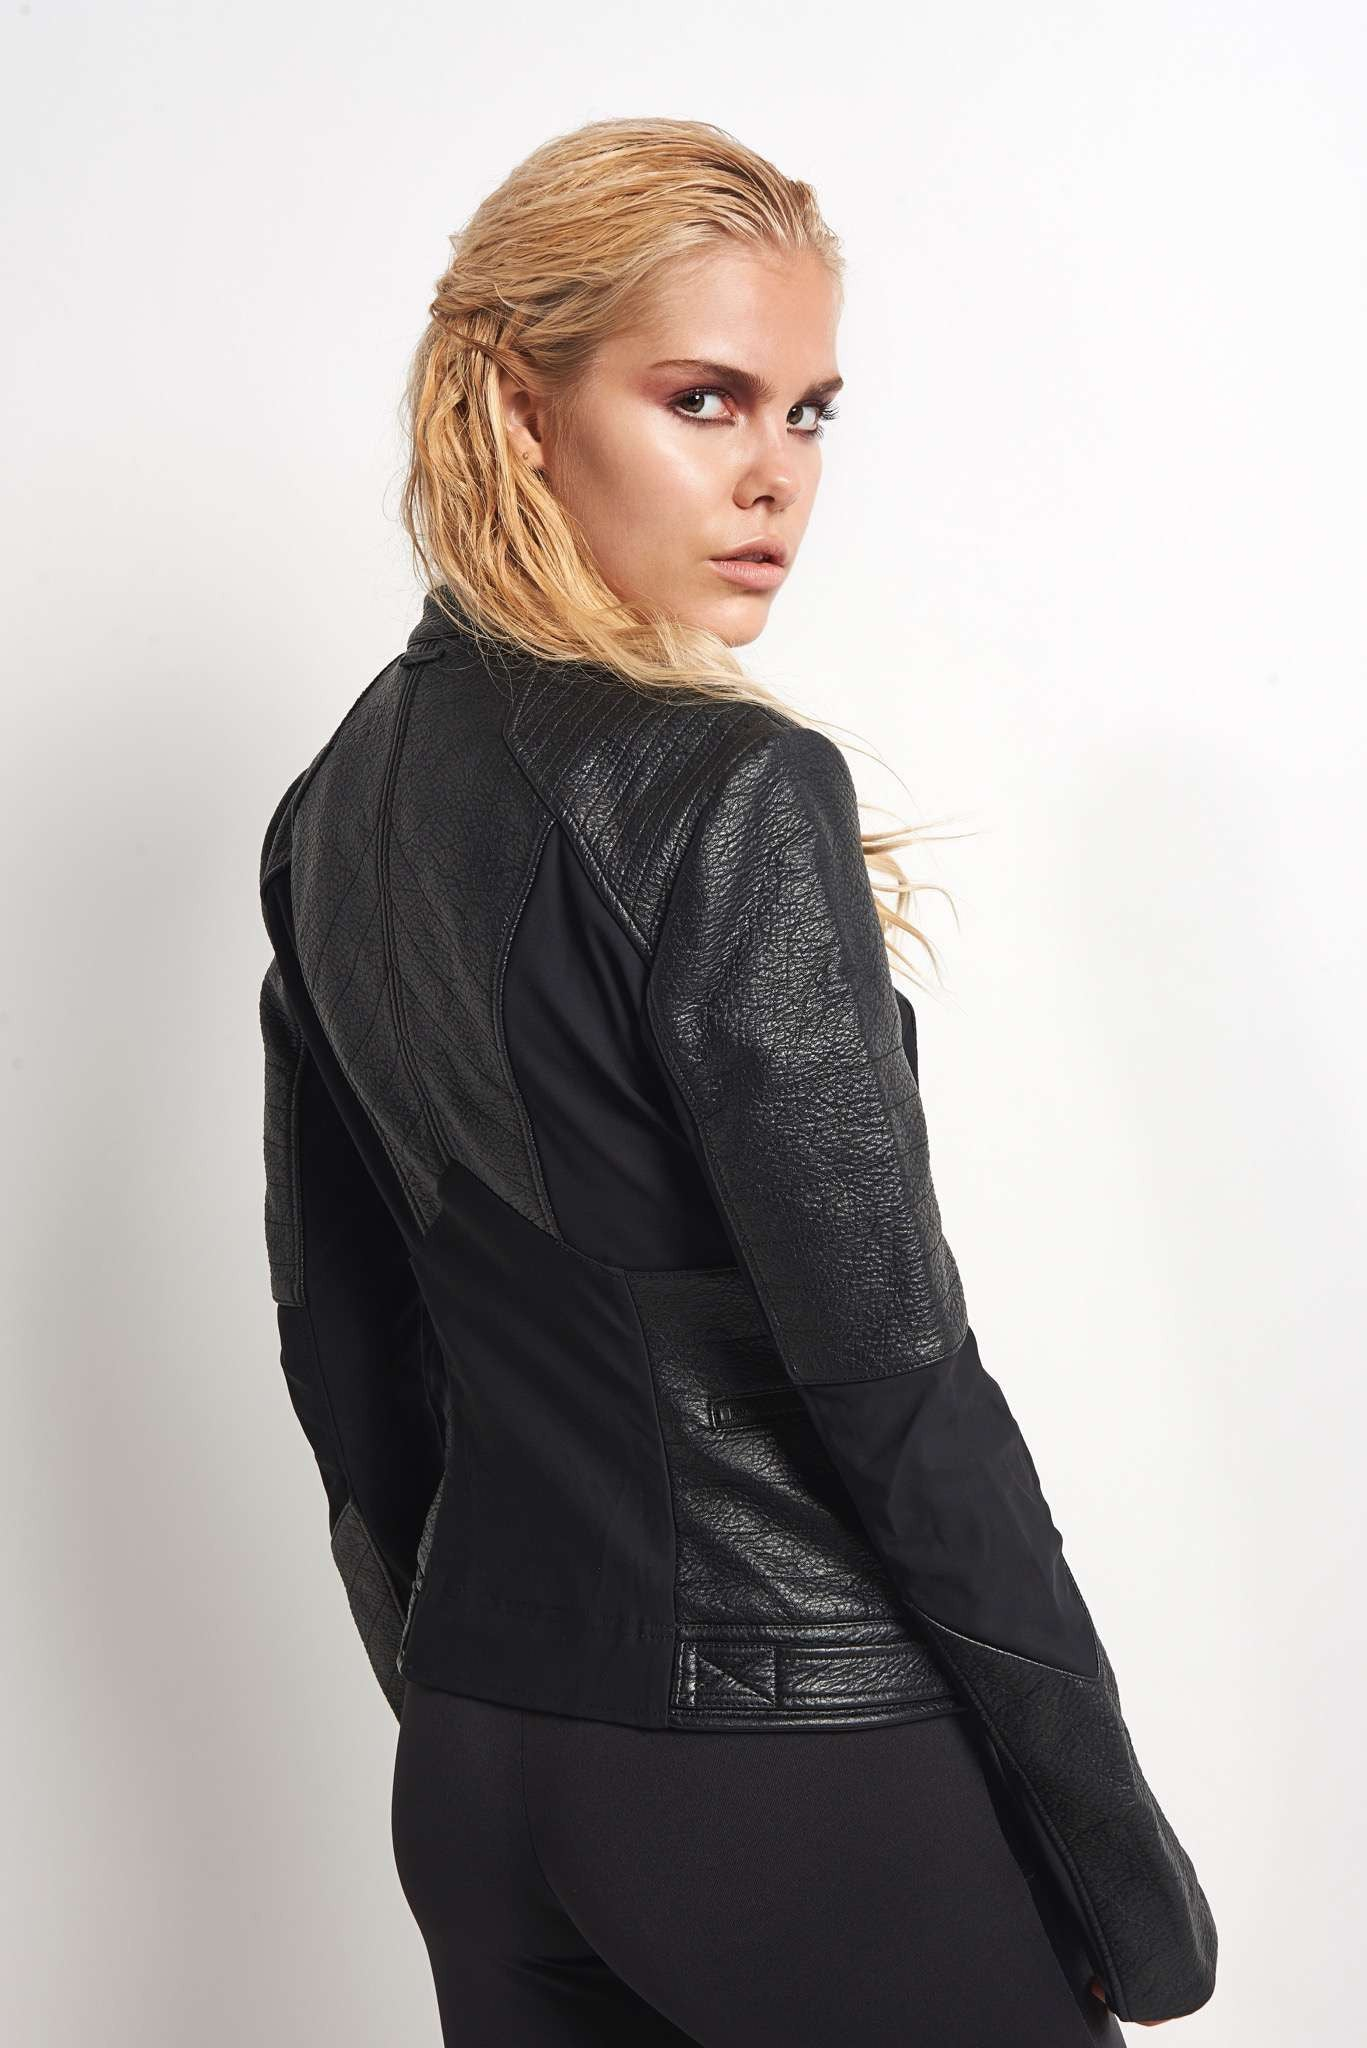 Blanc Noir Ryder Moto Jacket image 2 - The Sports Edit